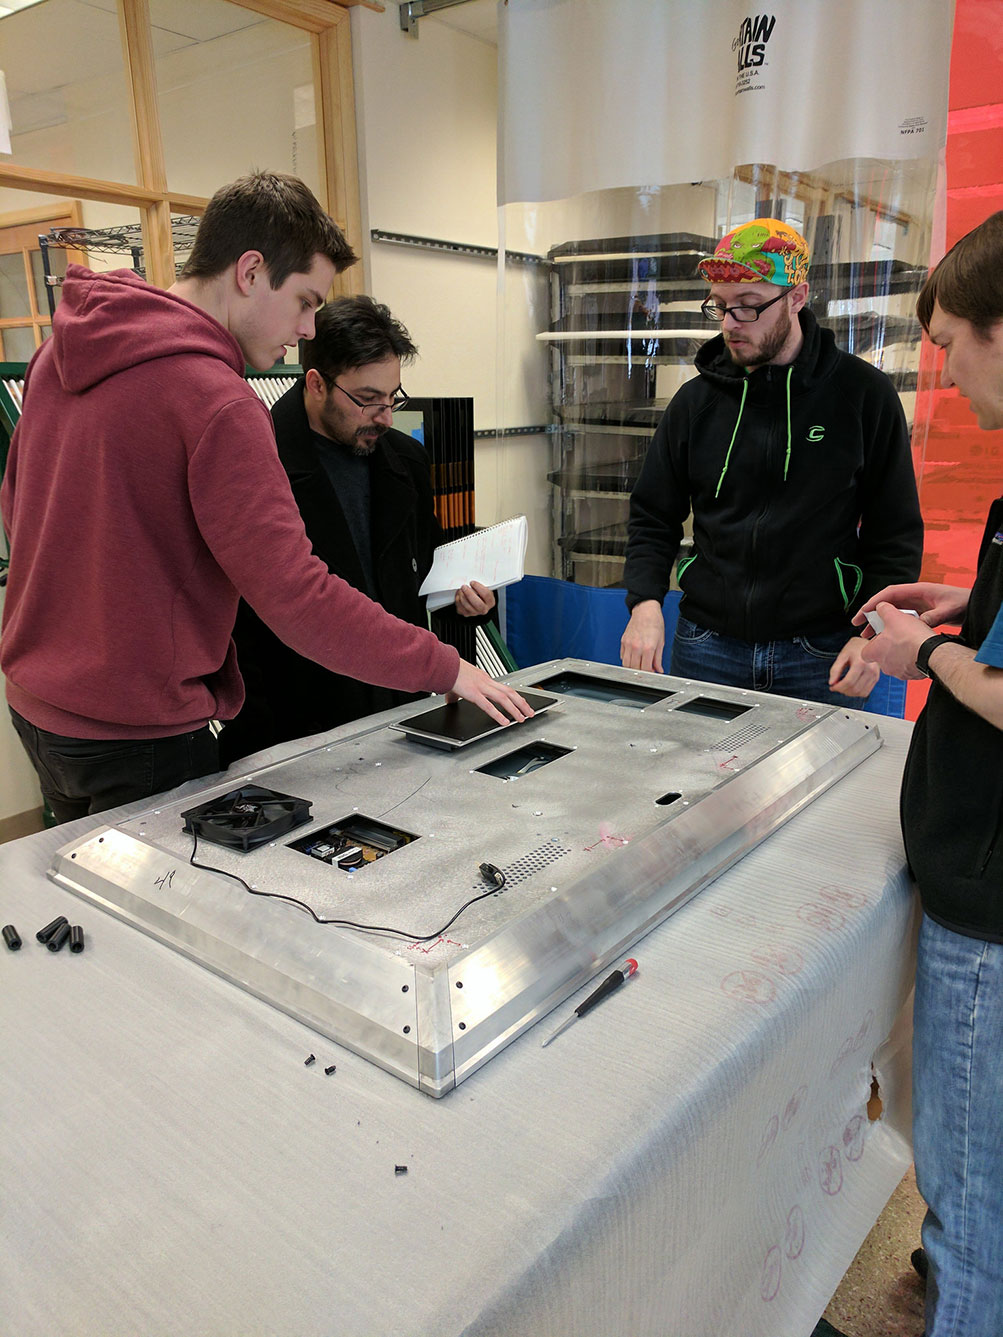 Our Industrial Design team and members of the production group discuss an early prototype.